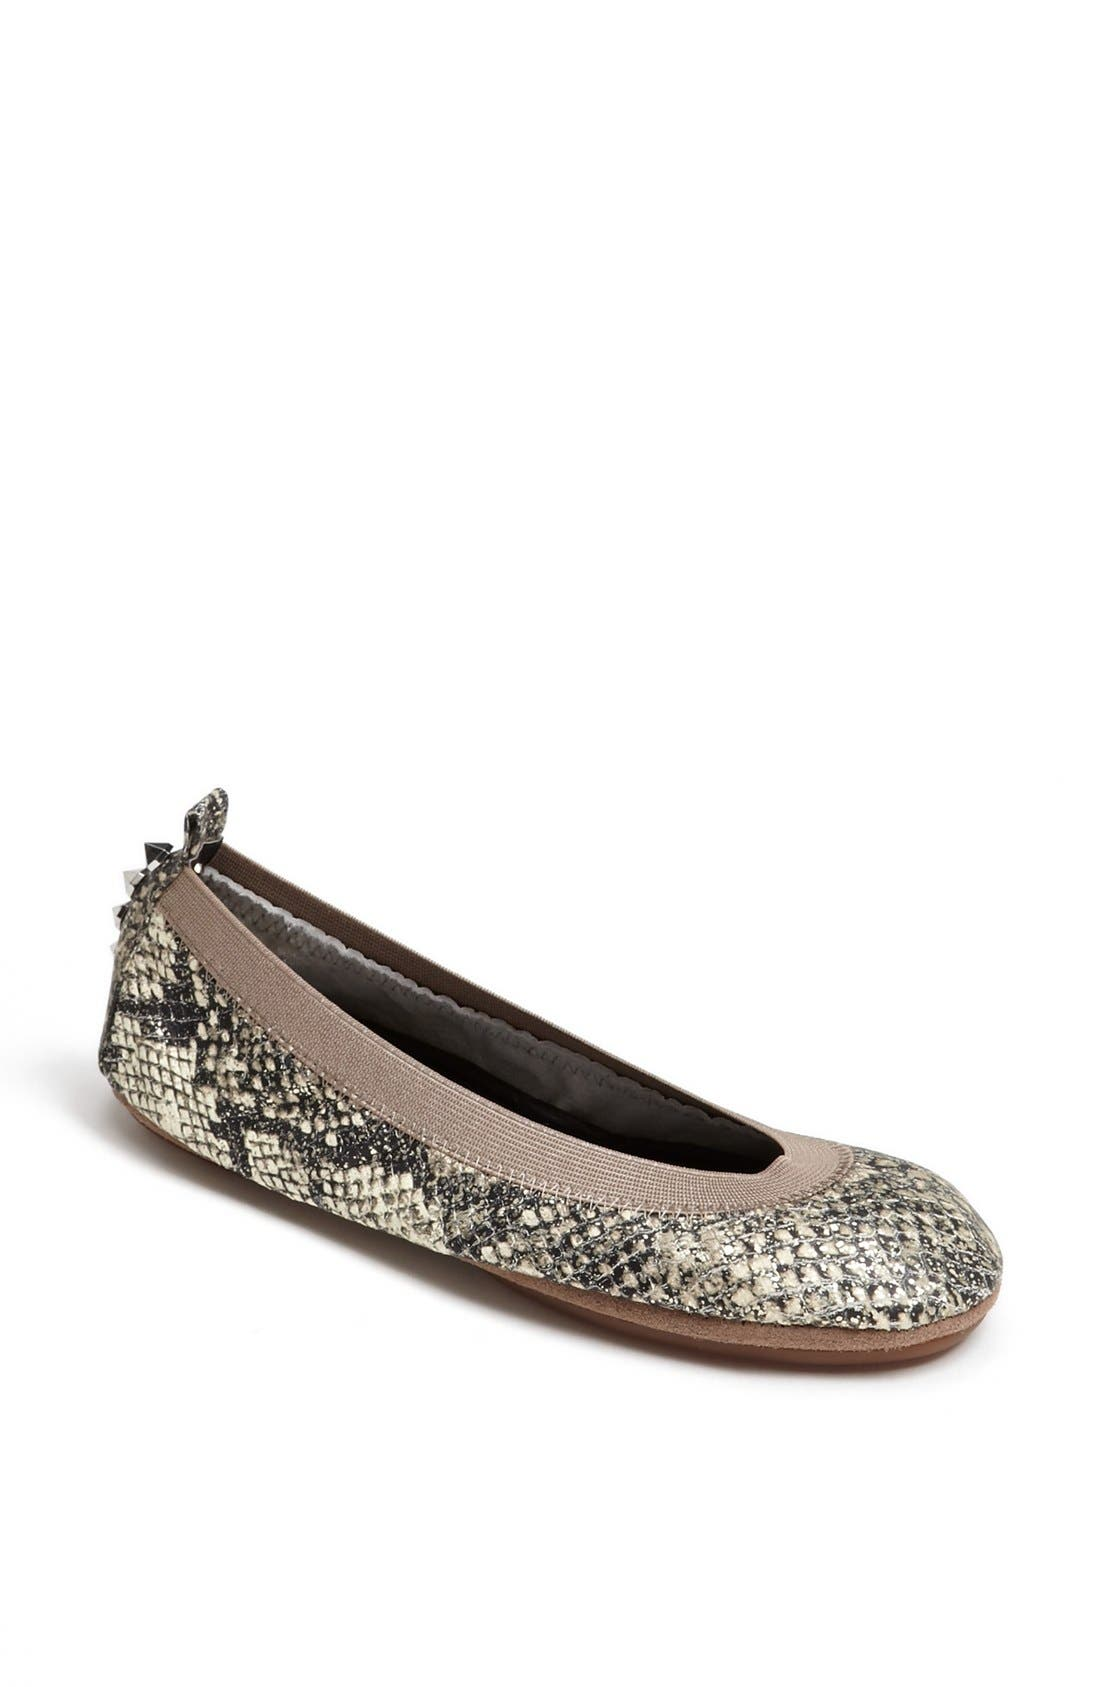 Alternate Image 1 Selected - Yosi Samra Studded Foldable Ballet Flat